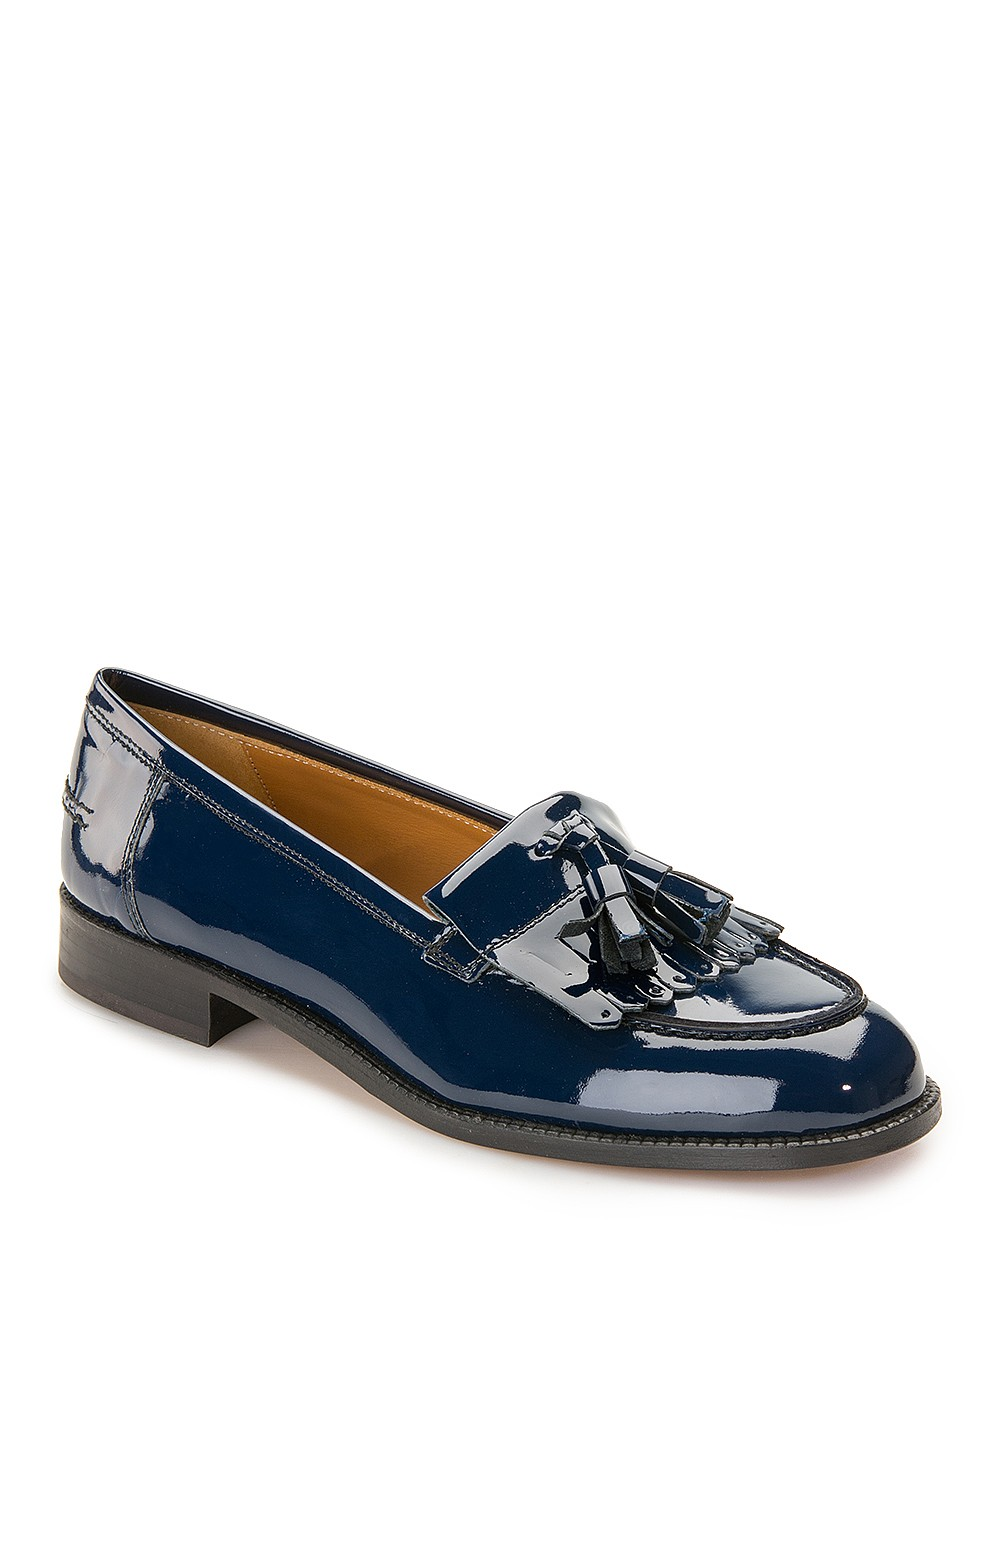 d43249de6 Patent Tassel Loafer - House of Bruar